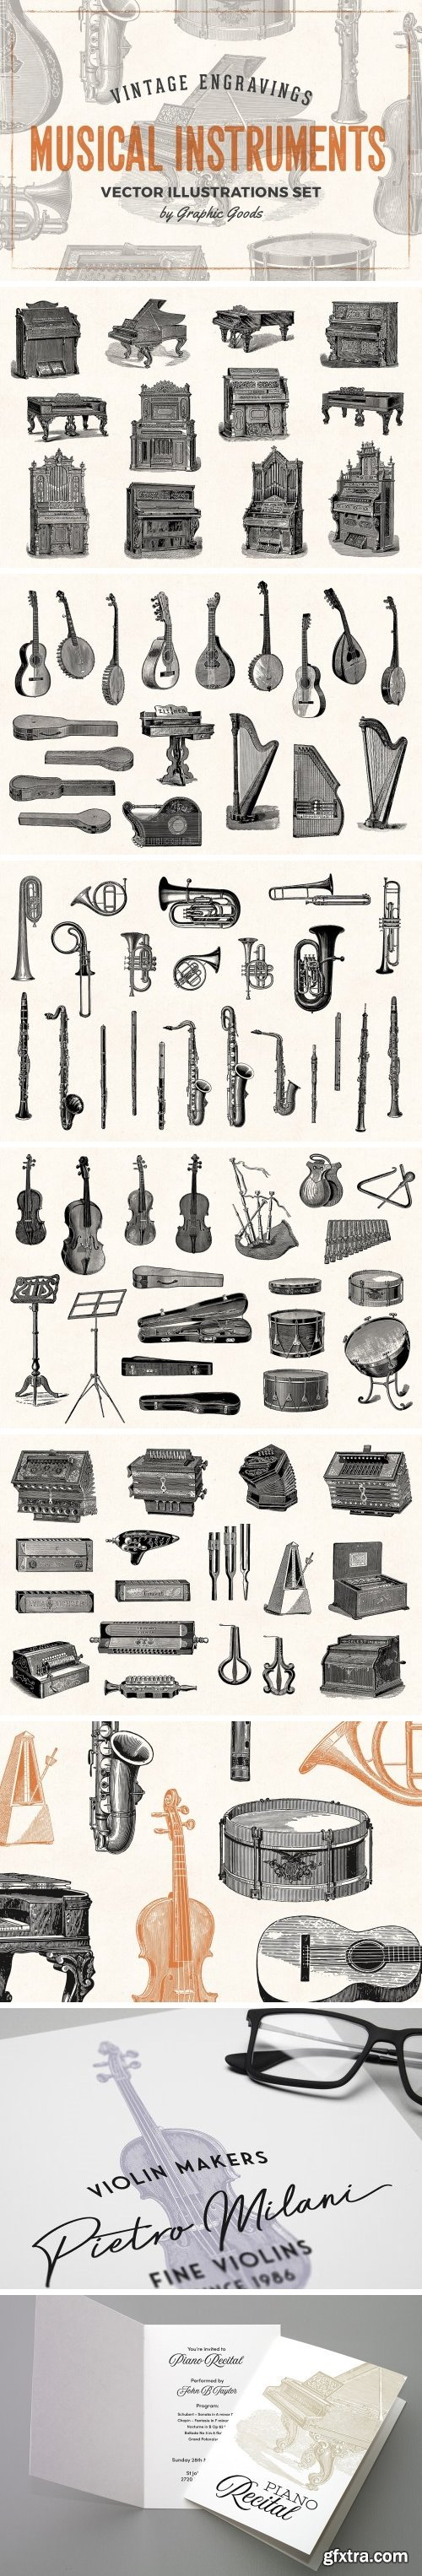 CM - Musical Instruments Engravings Set 1900180